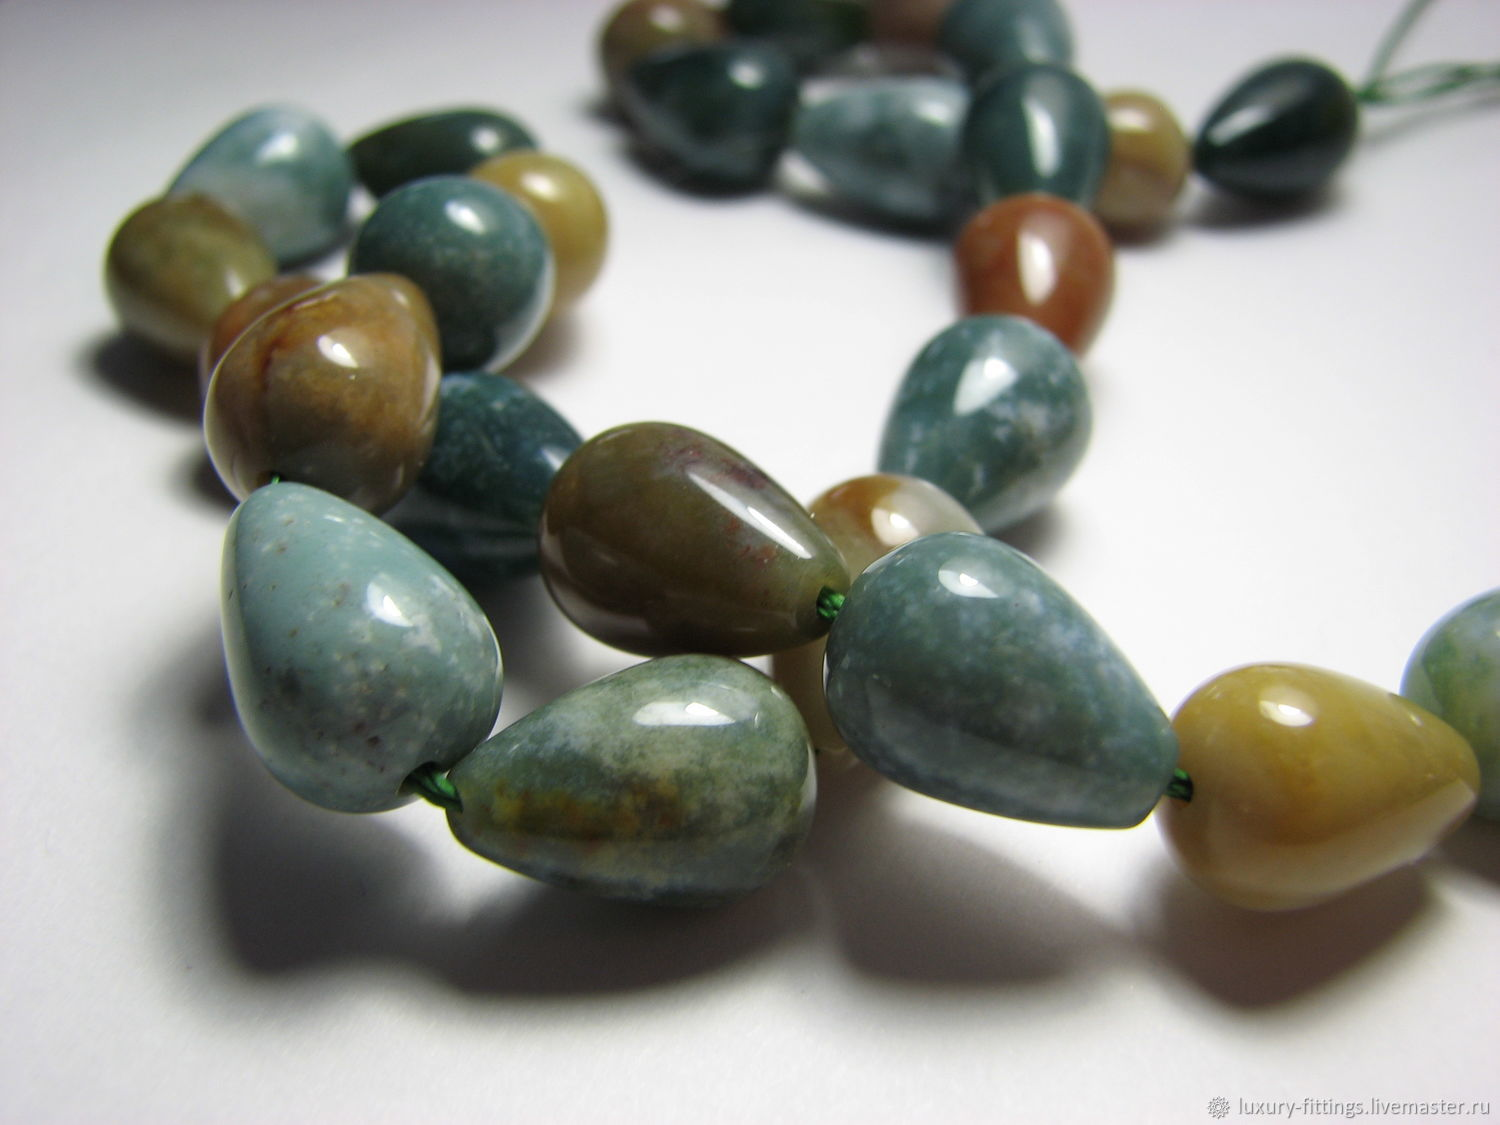 Chalcedony drops (Indian agate) 14h10, Beads1, Moscow,  Фото №1